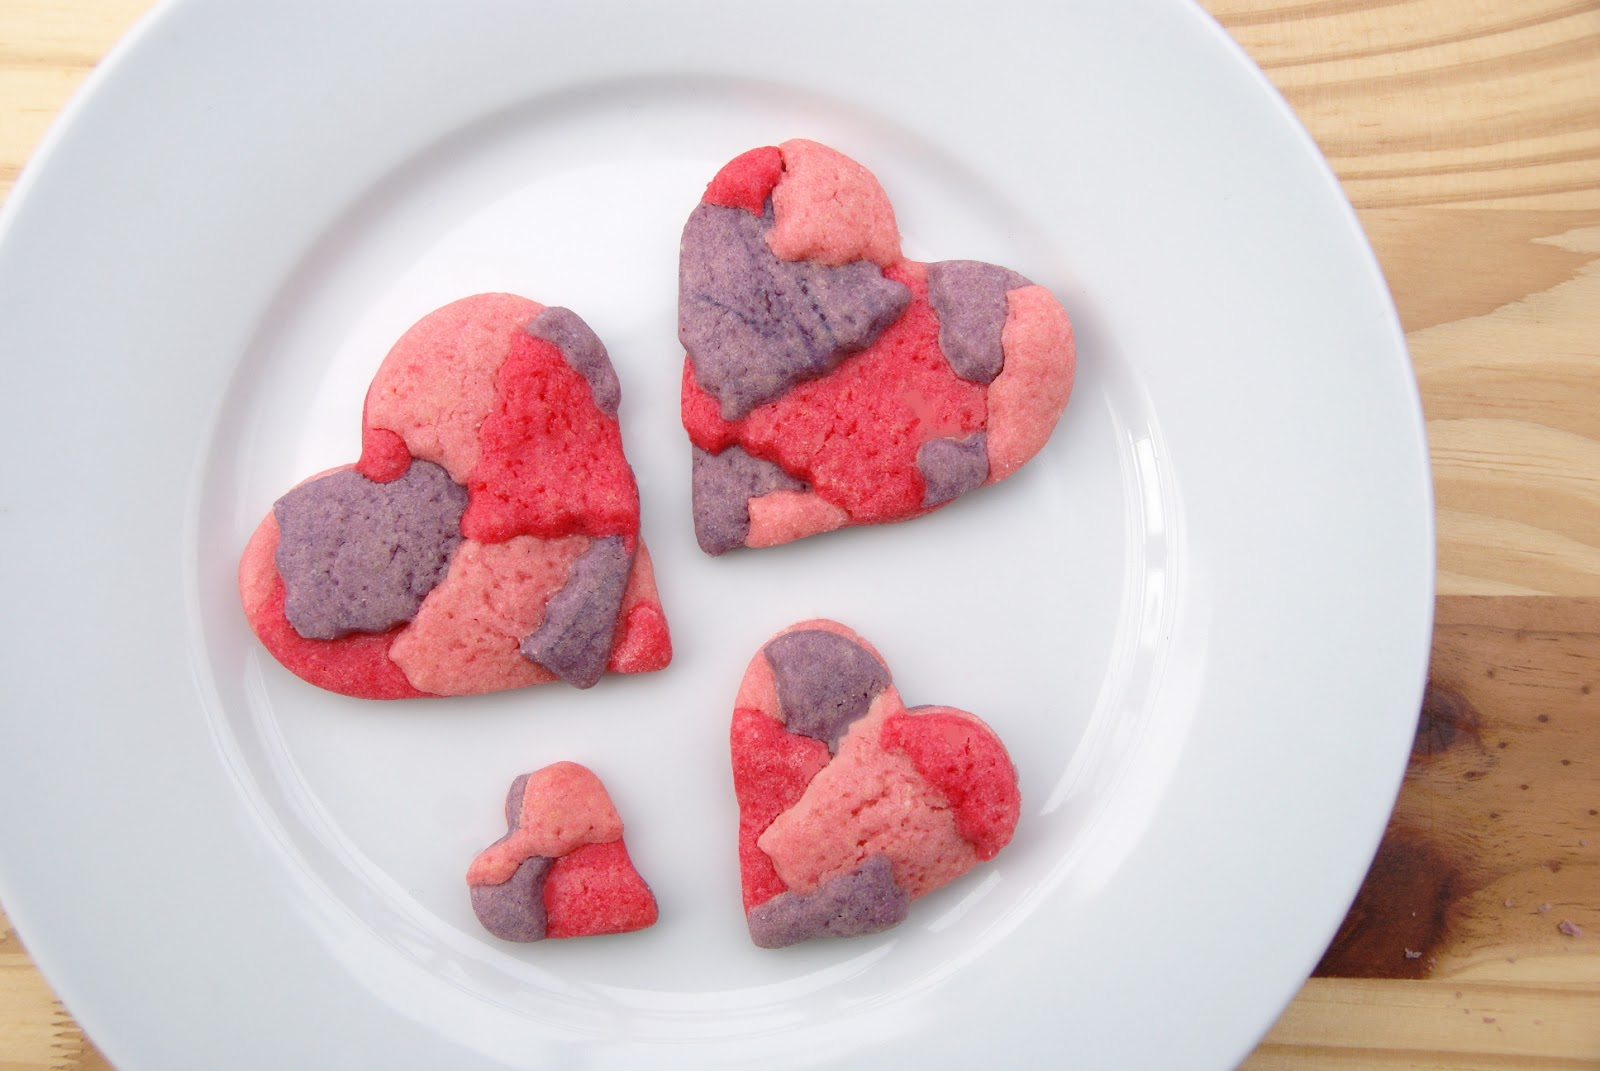 http://www.ablackbirdsepiphany.co.uk/2014/01/patchwork-valentine-sugar-cookies.html